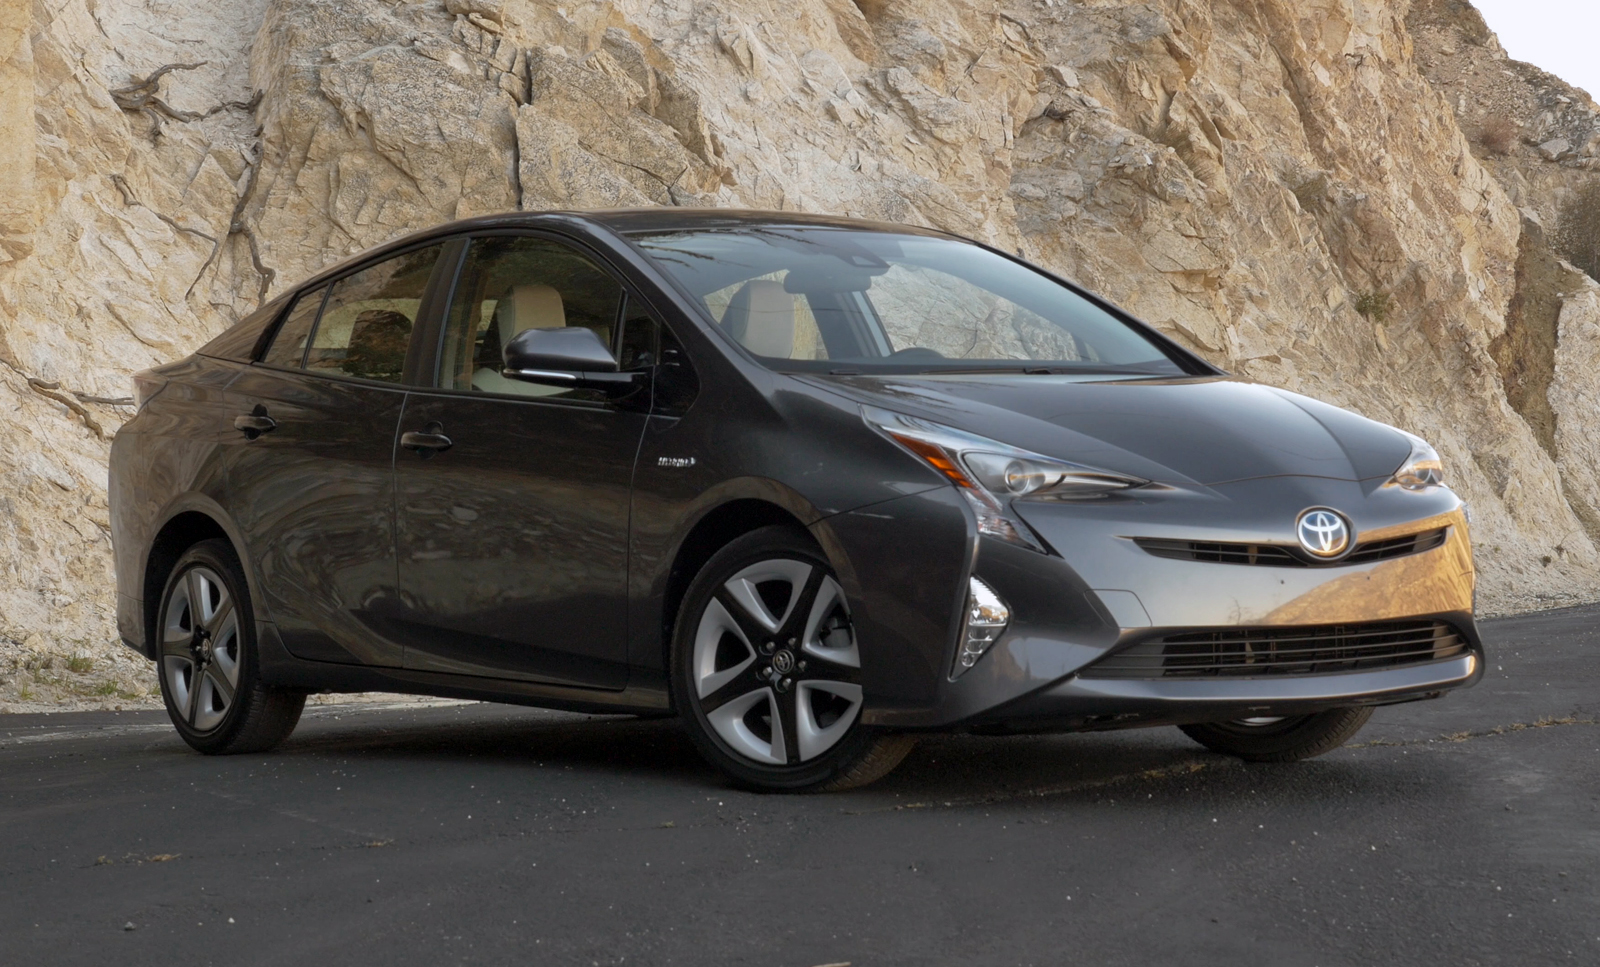 toyota prius 2016 car of the year nominee news. Black Bedroom Furniture Sets. Home Design Ideas